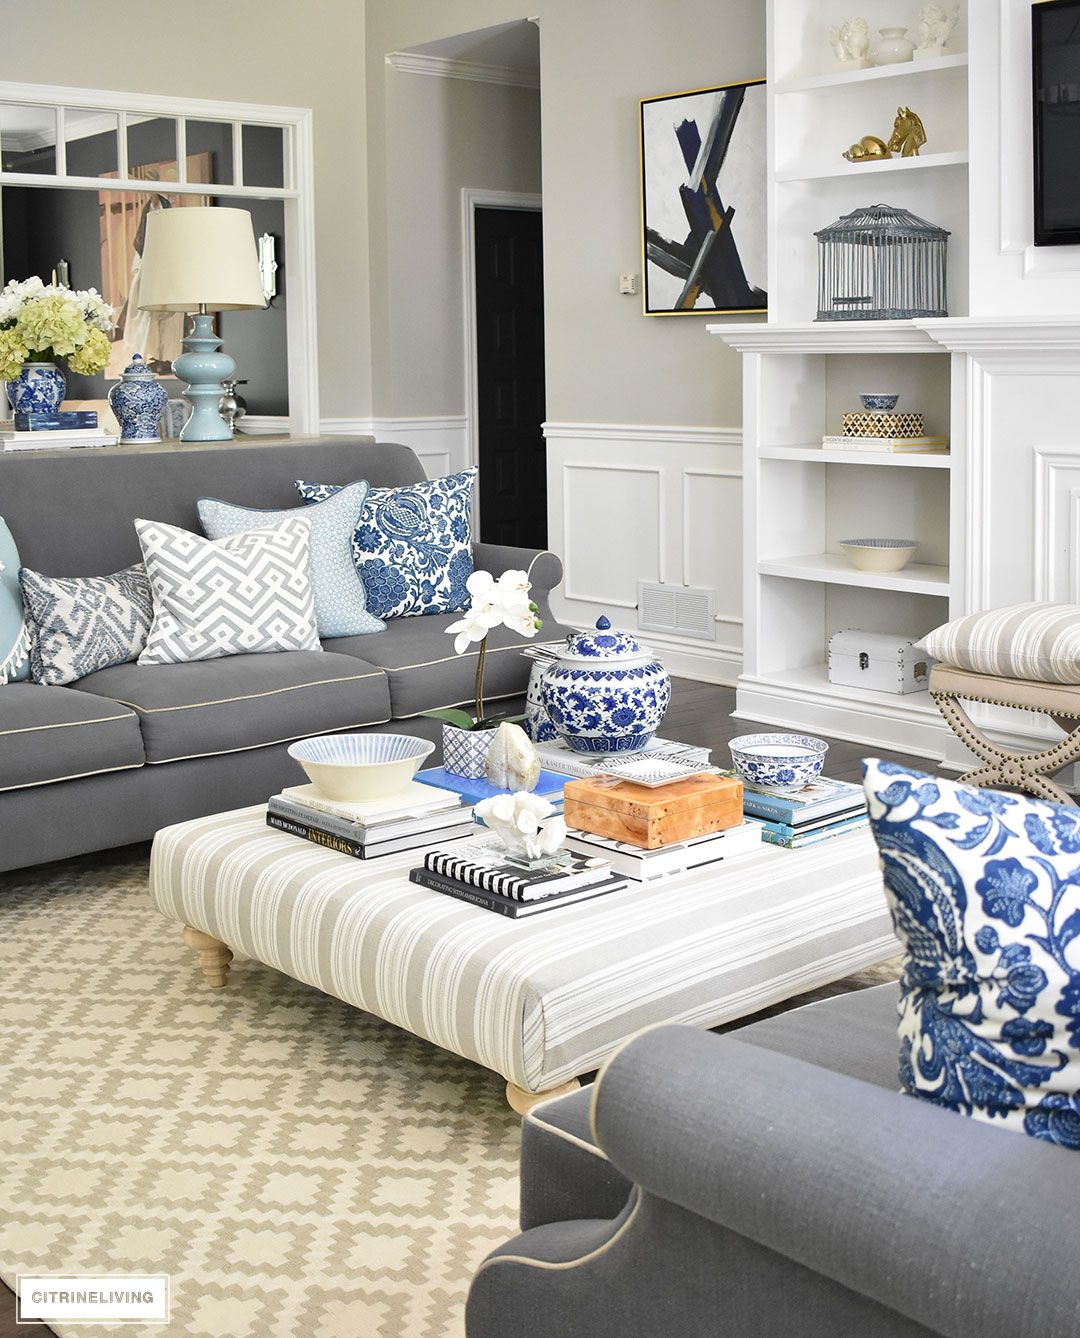 3 WAYS TO STYLE YOUR COFFEE TABLE OR OTTOMAN | Bandejas, Hogar y ...